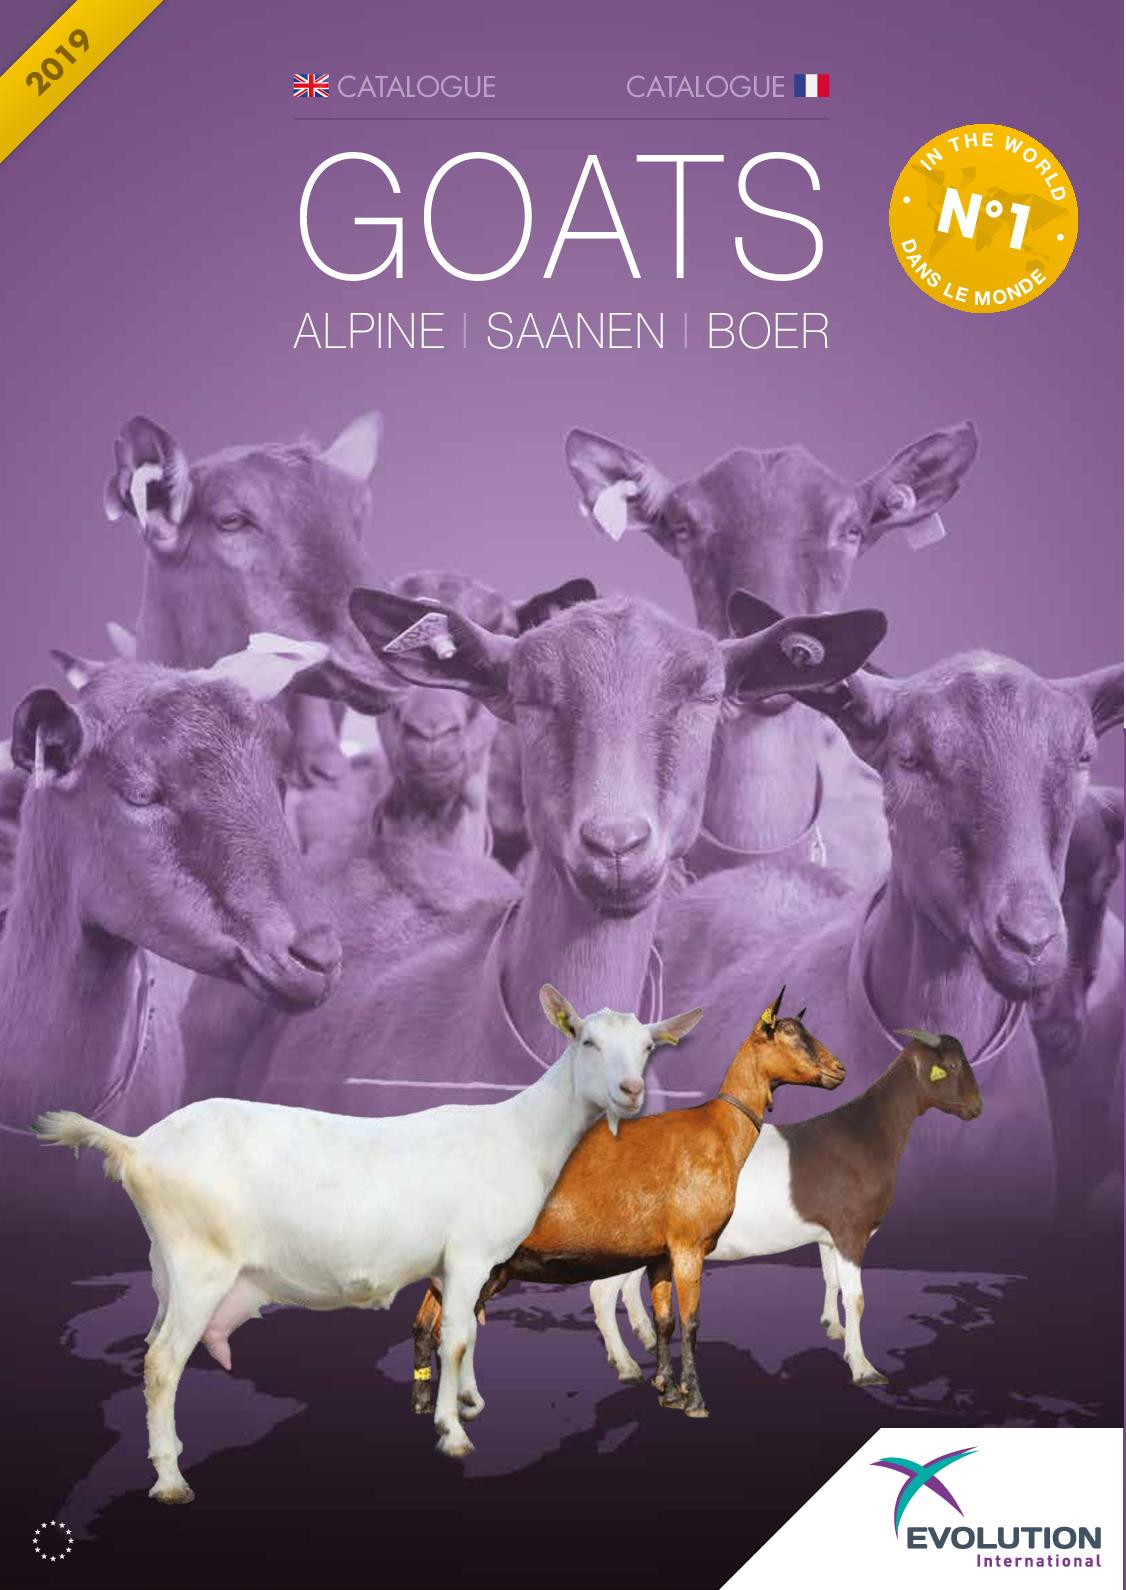 Goats Europe FR-EN - 2019 Evolution International